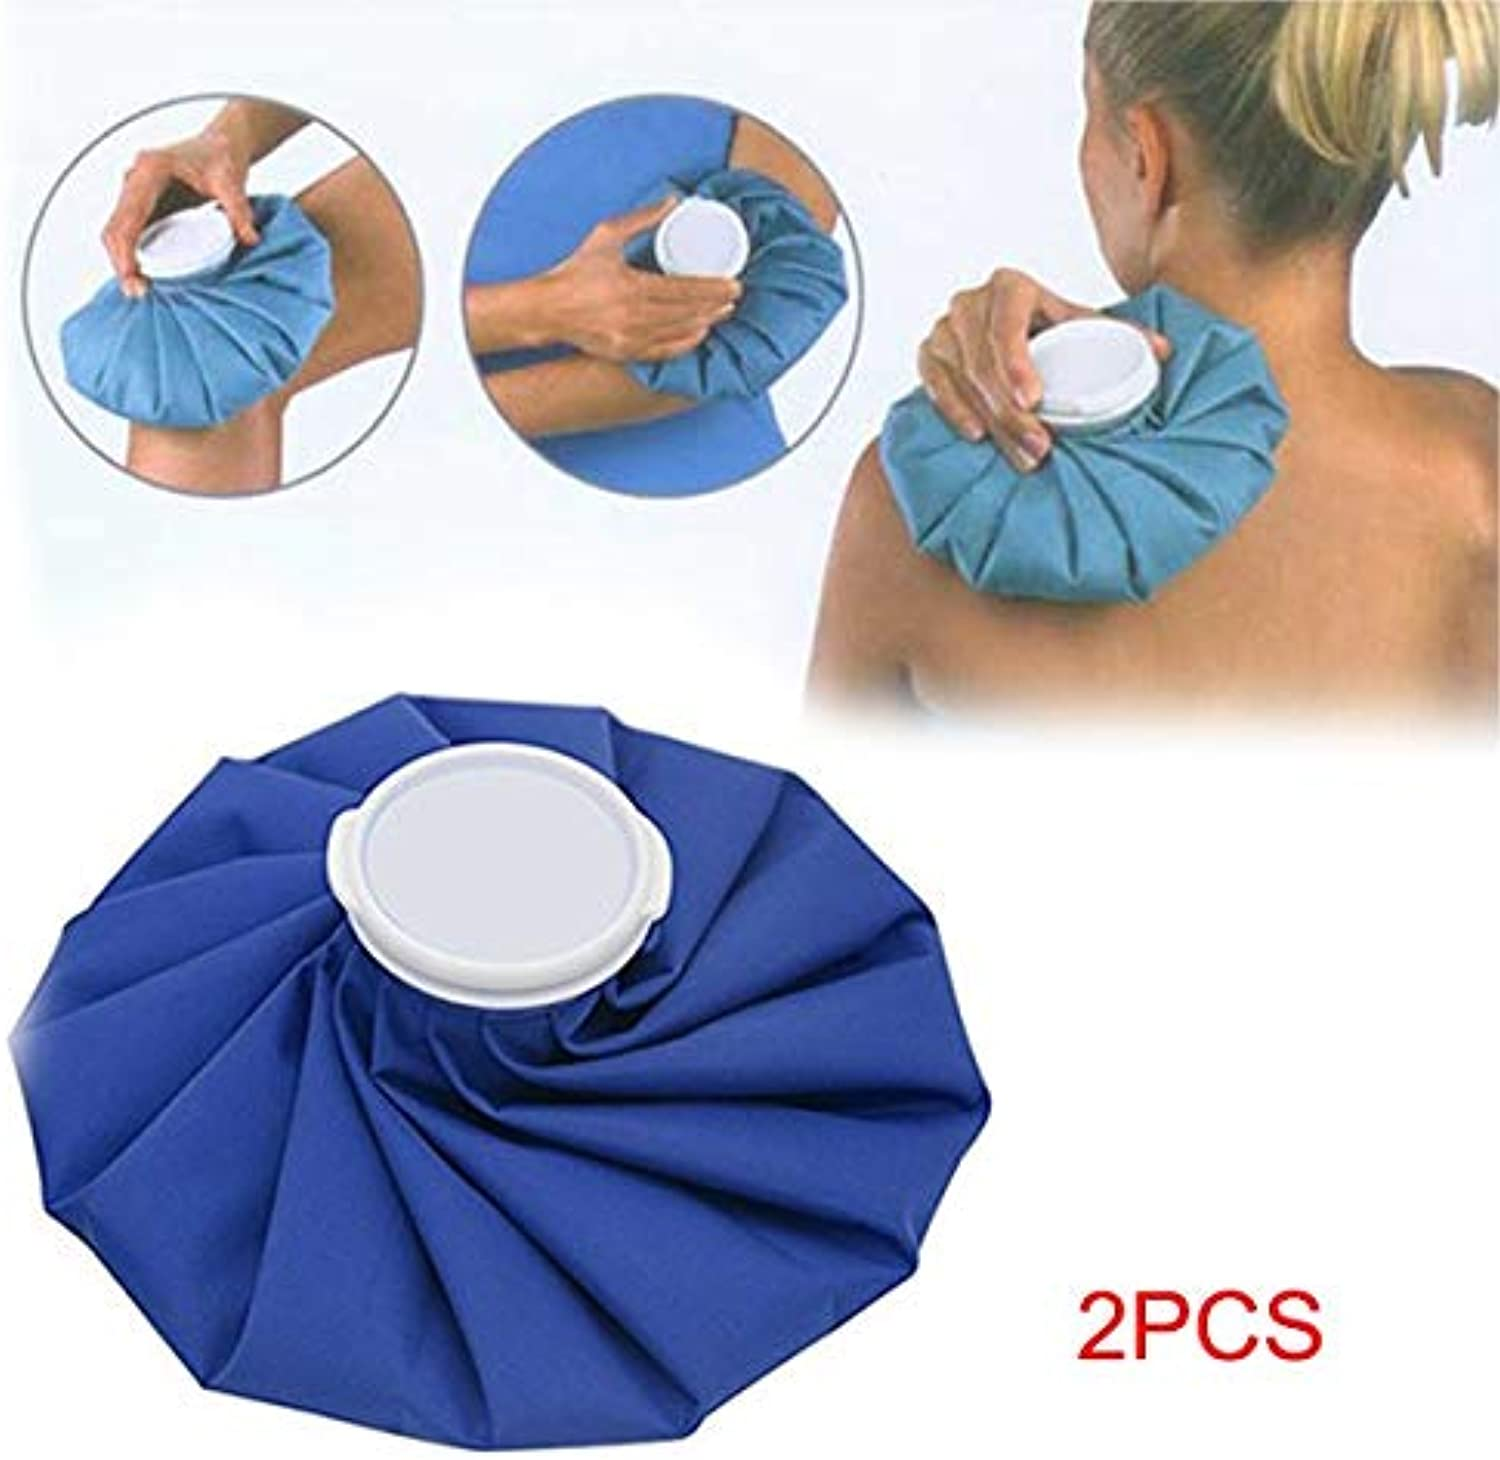 New Pocket Sport Injury Ice Bag Cold Therapy Pack Cap Outdoor Traveling Climbing Gym Fitness Emergency Equipment 2 Pcs   6 inch